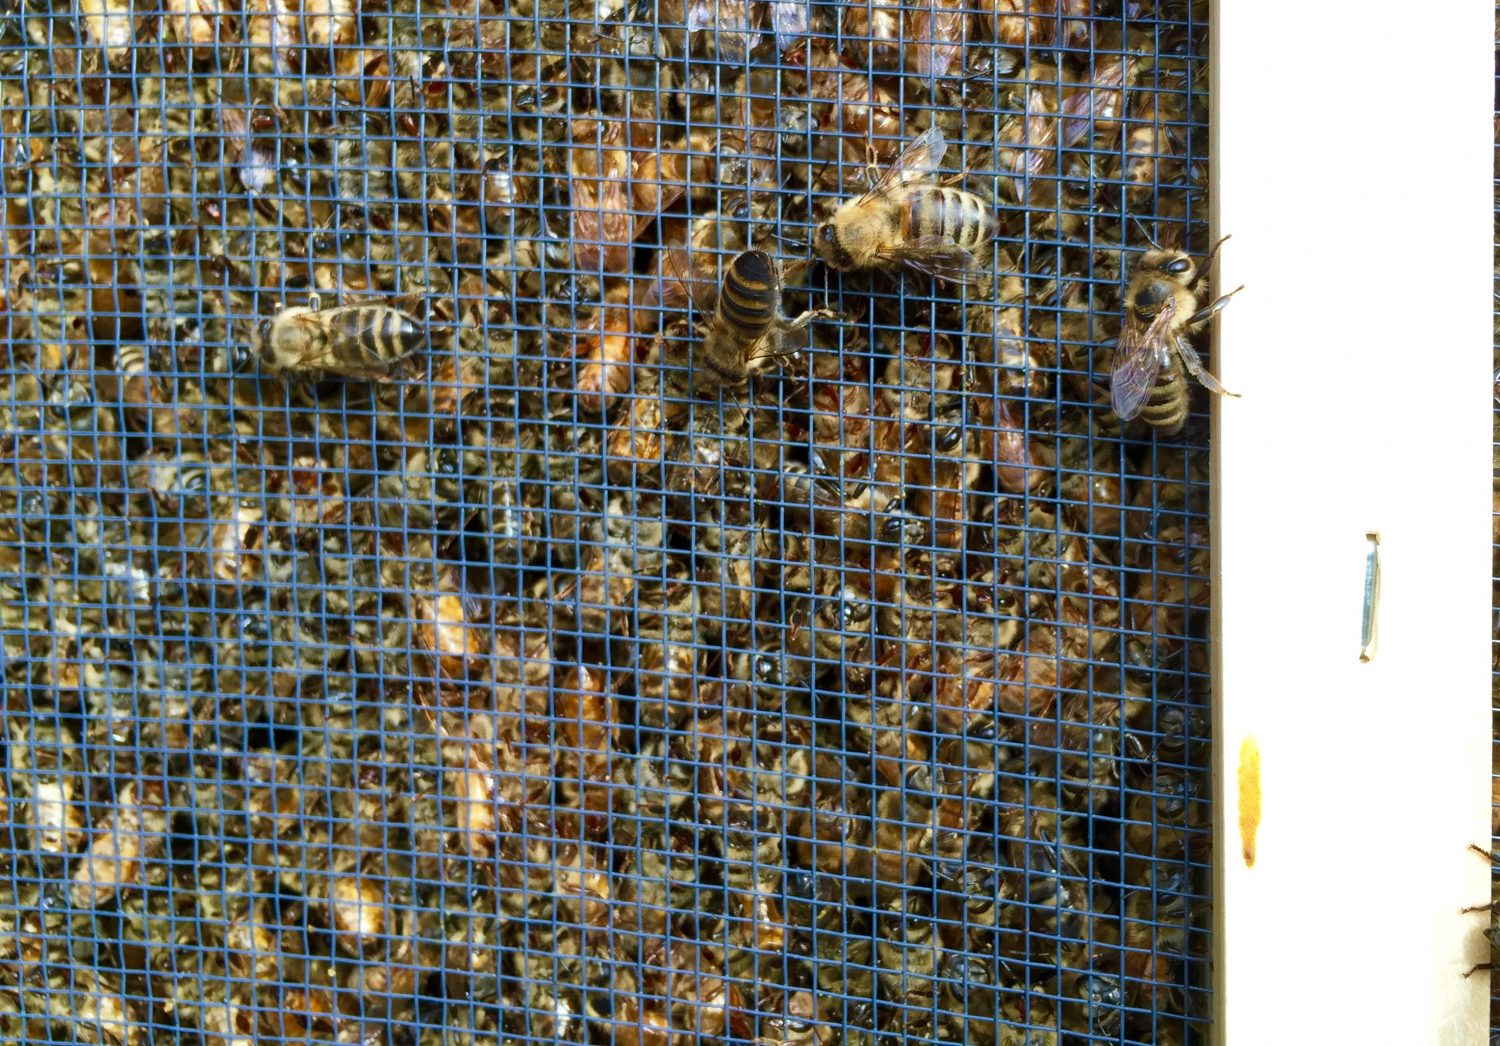 Bees in a transport cage.